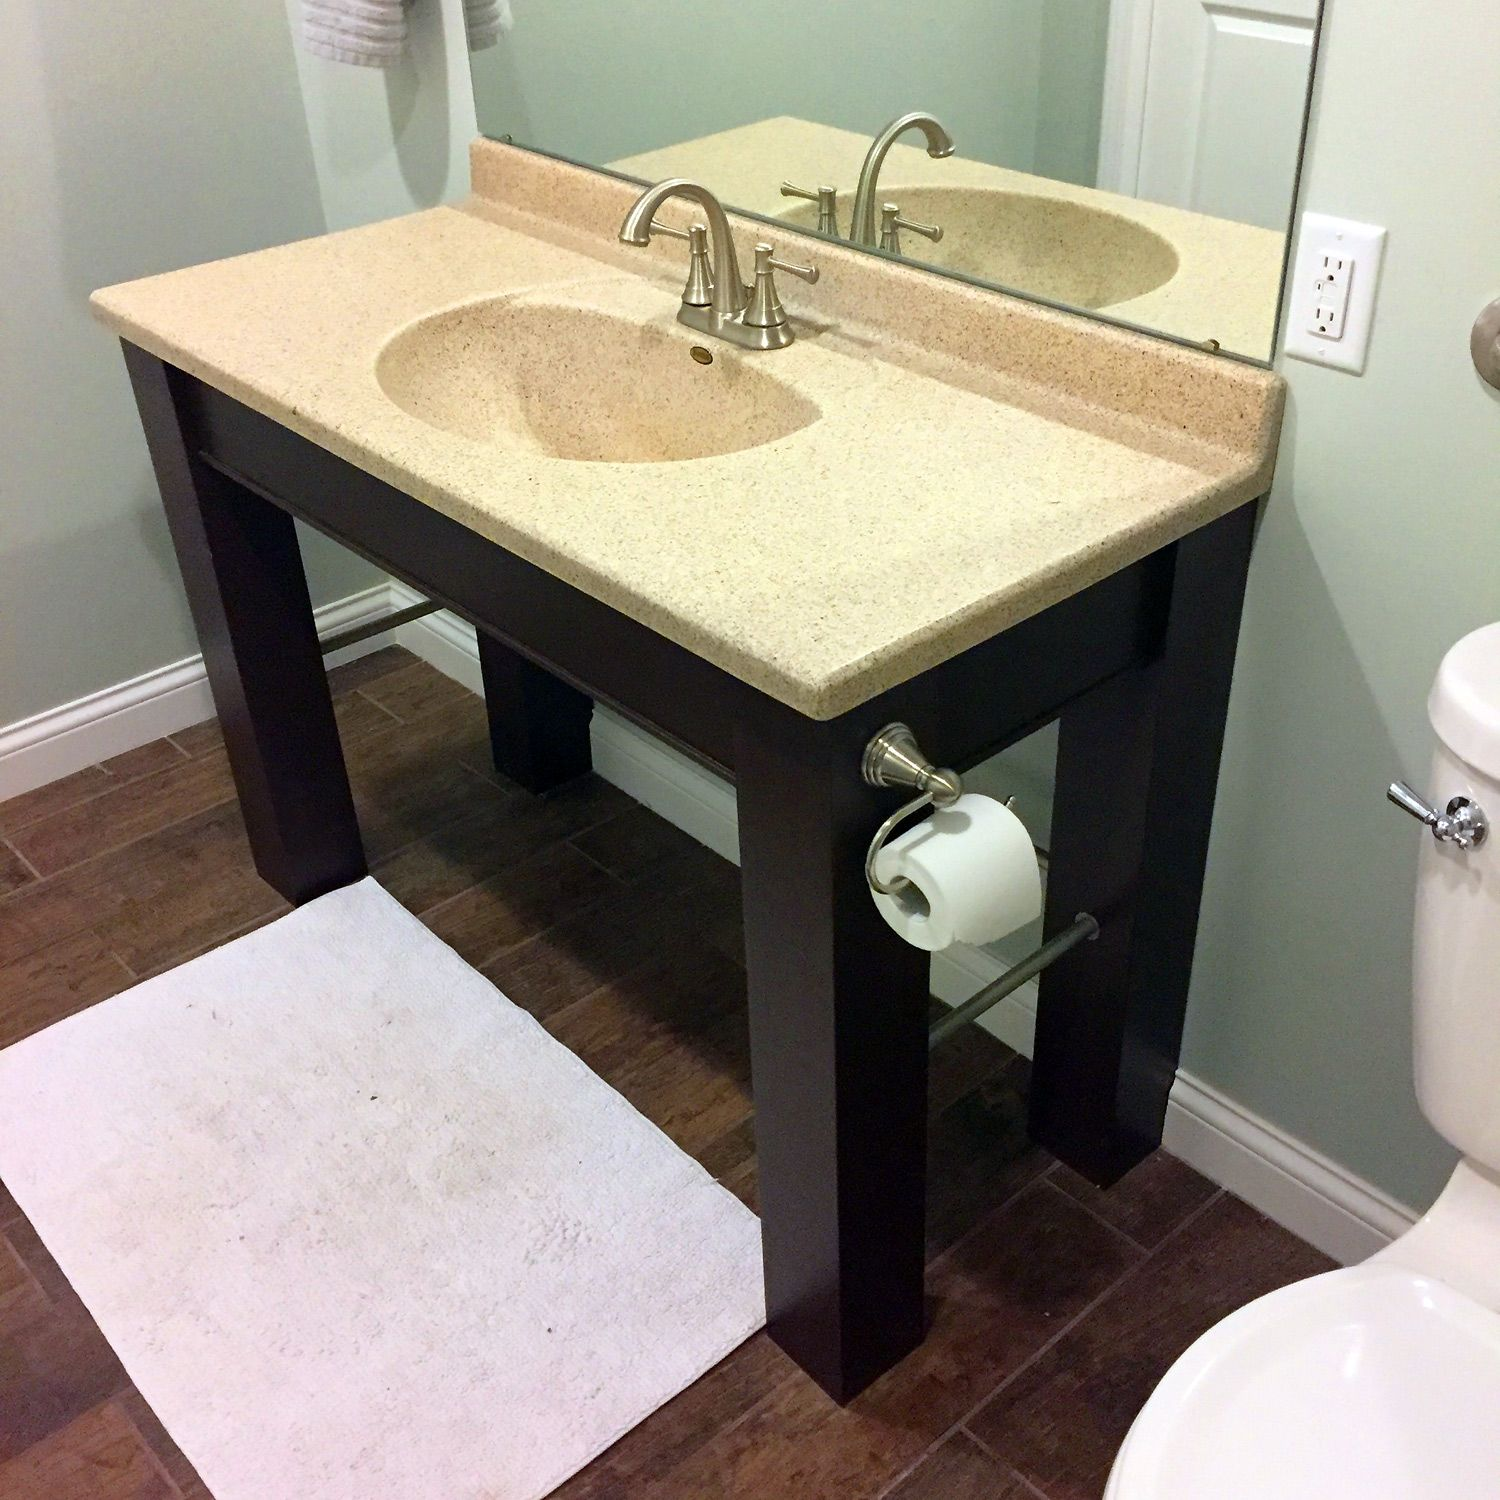 There Aren T A Lot Of Options Out There For Ada Compliant Vanities Most Are Wall Mounted Which I Didn T Ada Bathroom Disabled Bathroom Bathroom Design Plans